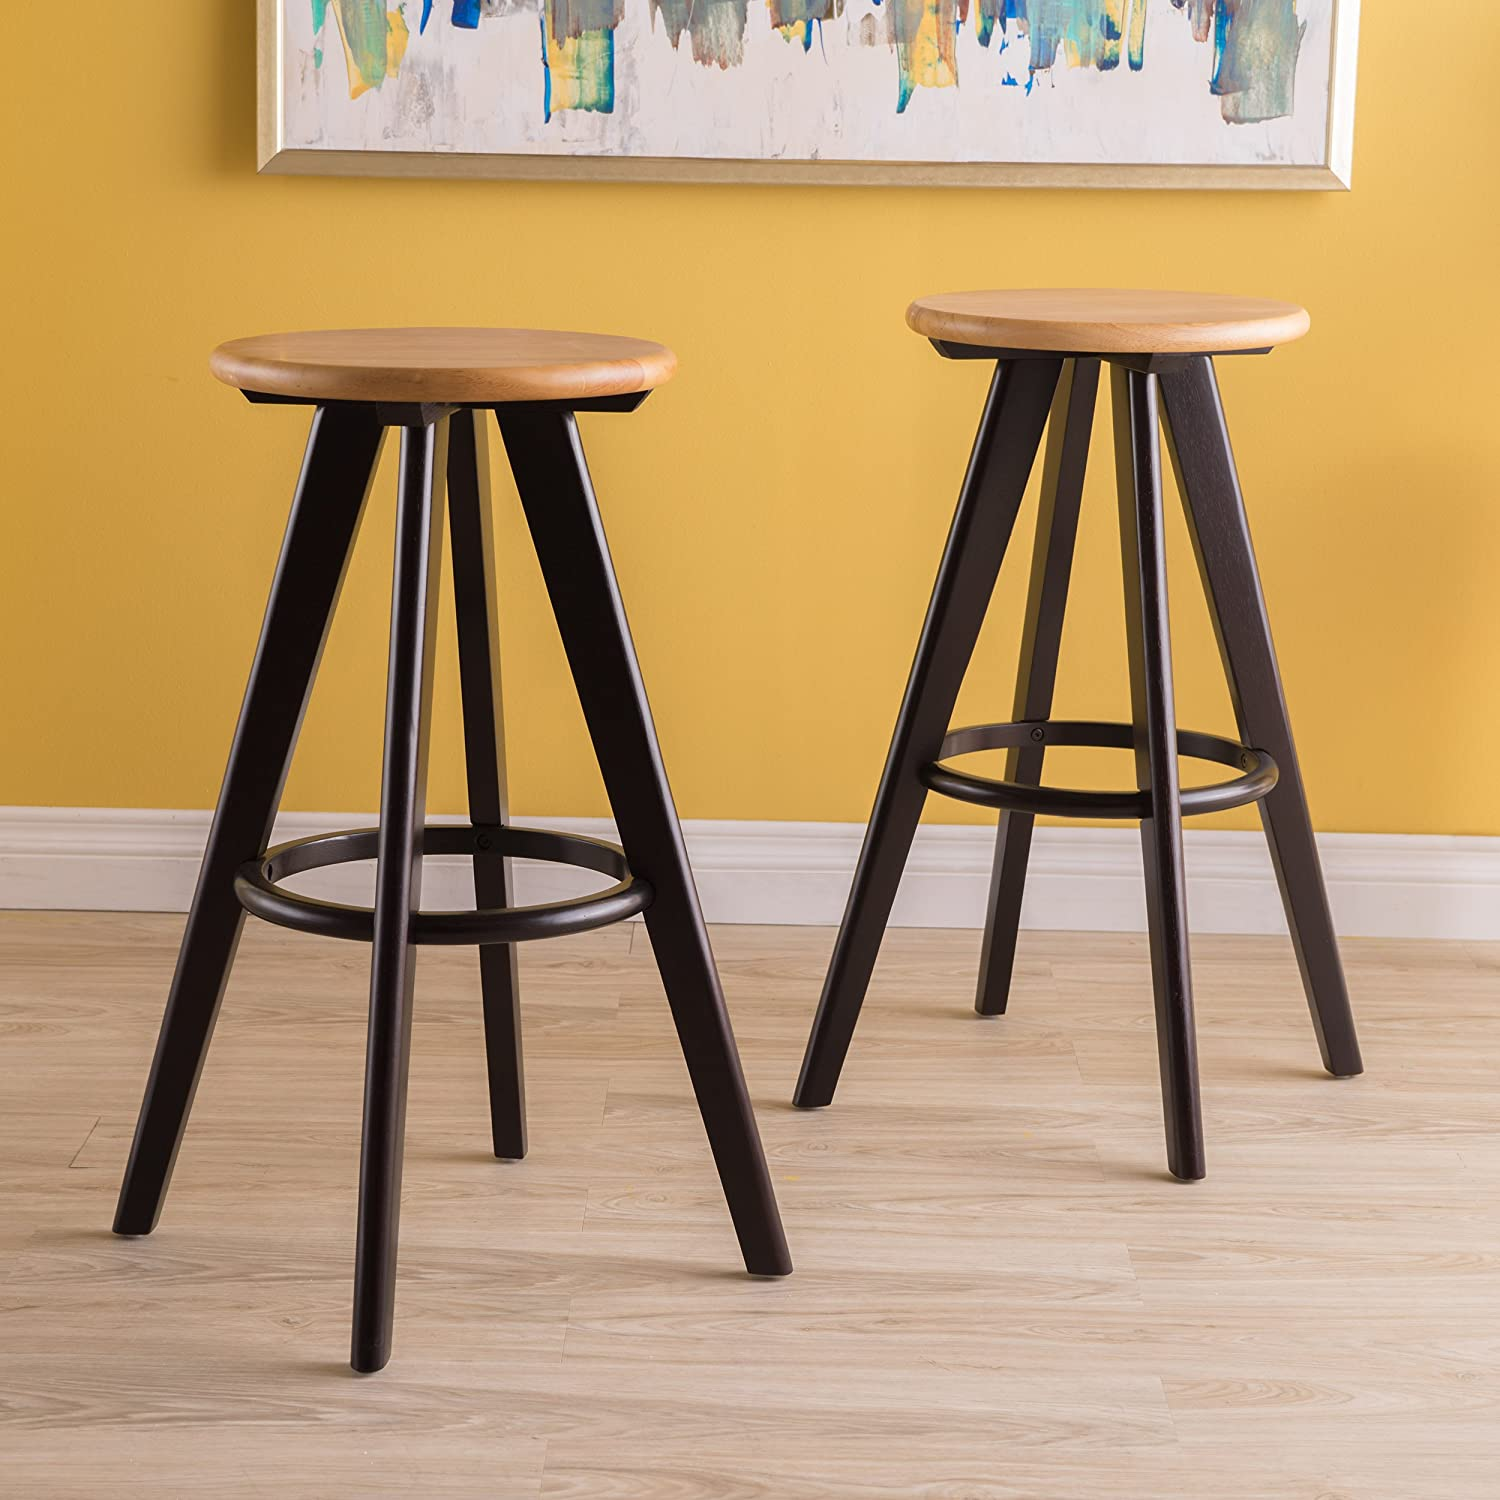 Fabulous Christopher Knight Home Judd Natural Finish Wood Bar Stools Set Of 2 Pdpeps Interior Chair Design Pdpepsorg